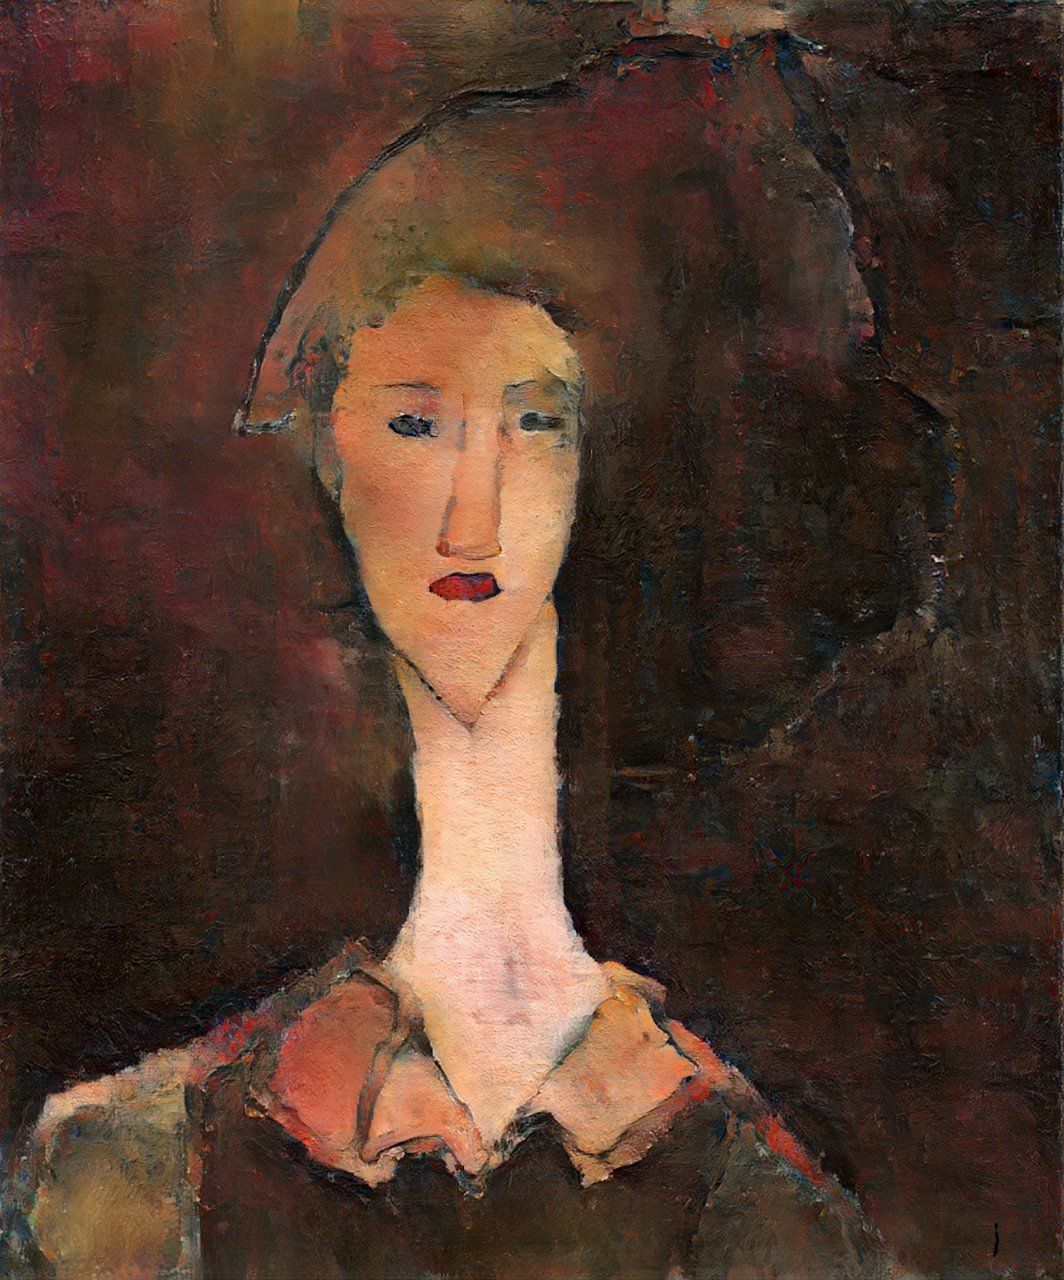 Did Modernist Master Modigliani Paint a New Portrait Over a Likeness of His Ex?